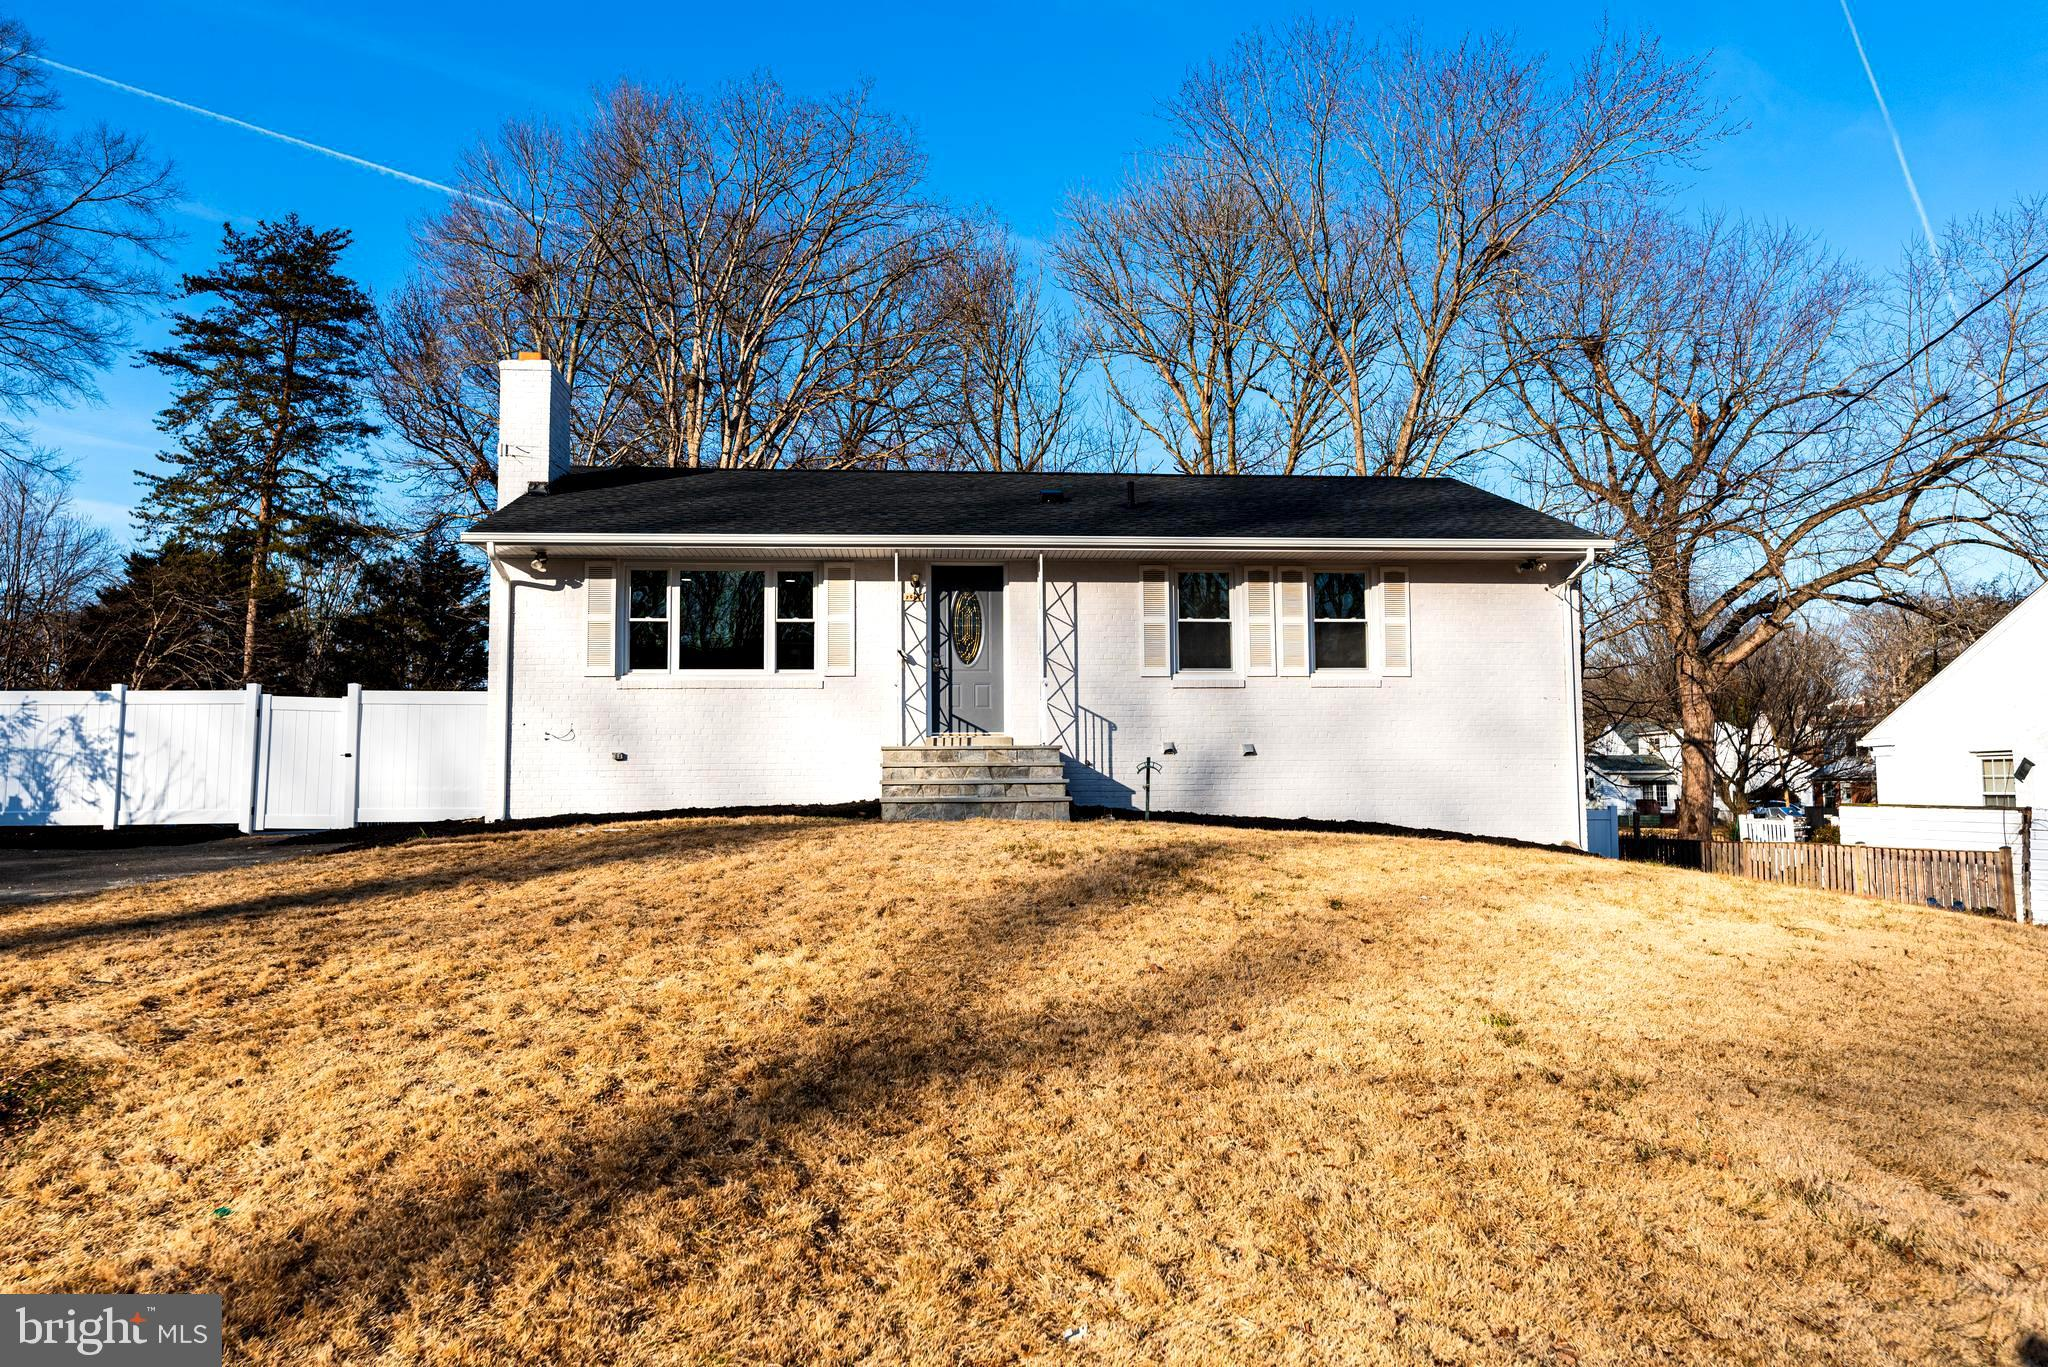 BACK ON MARET WITH A PRICE IMPROVEMENT! The buyers of this home will benefit from deferred maintenan